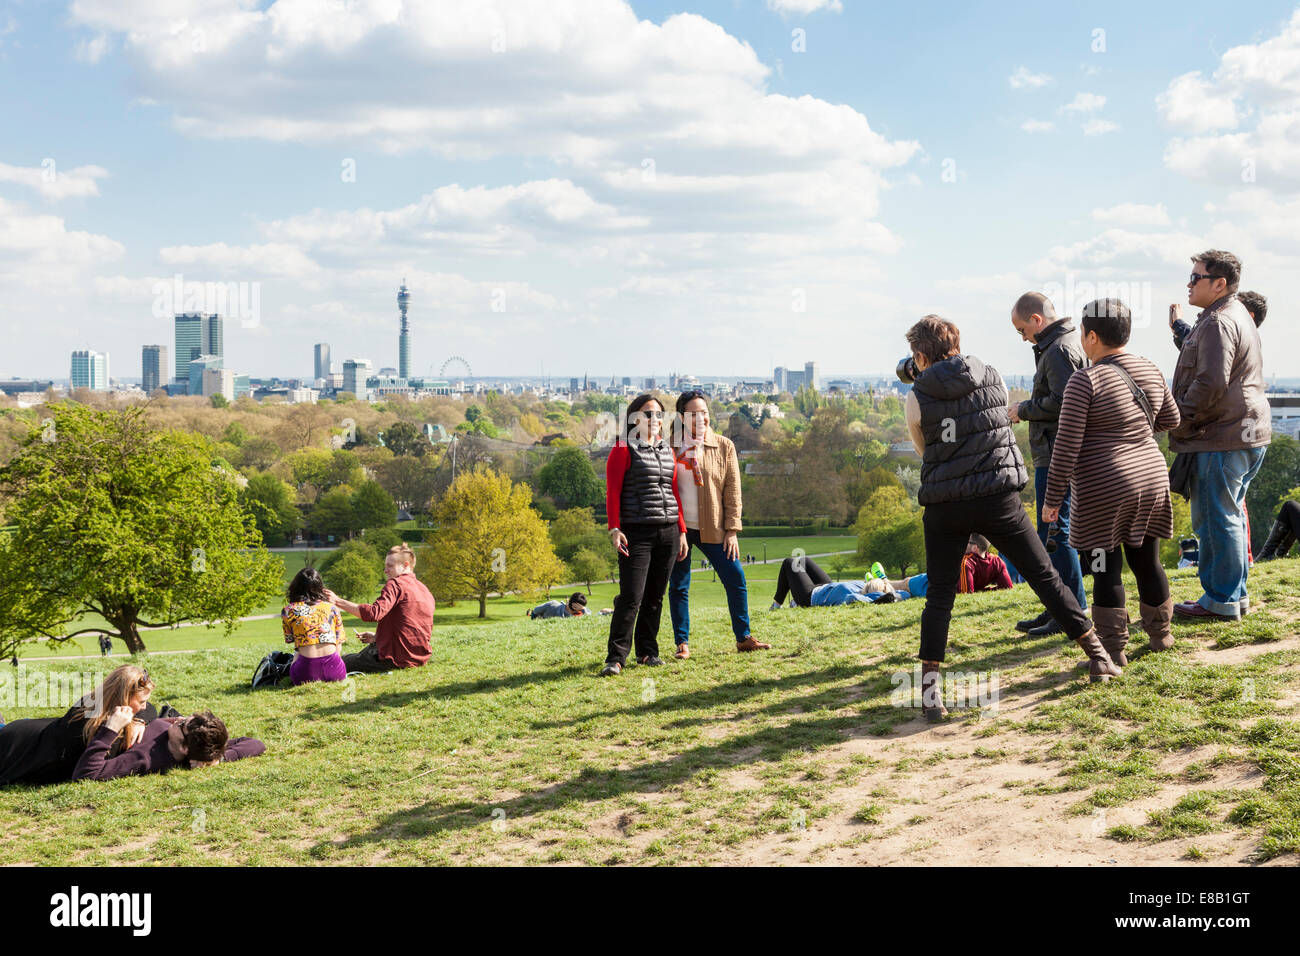 People photographing friends on Primrose Hill with the London city skyline in the distance, England, UK - Stock Image